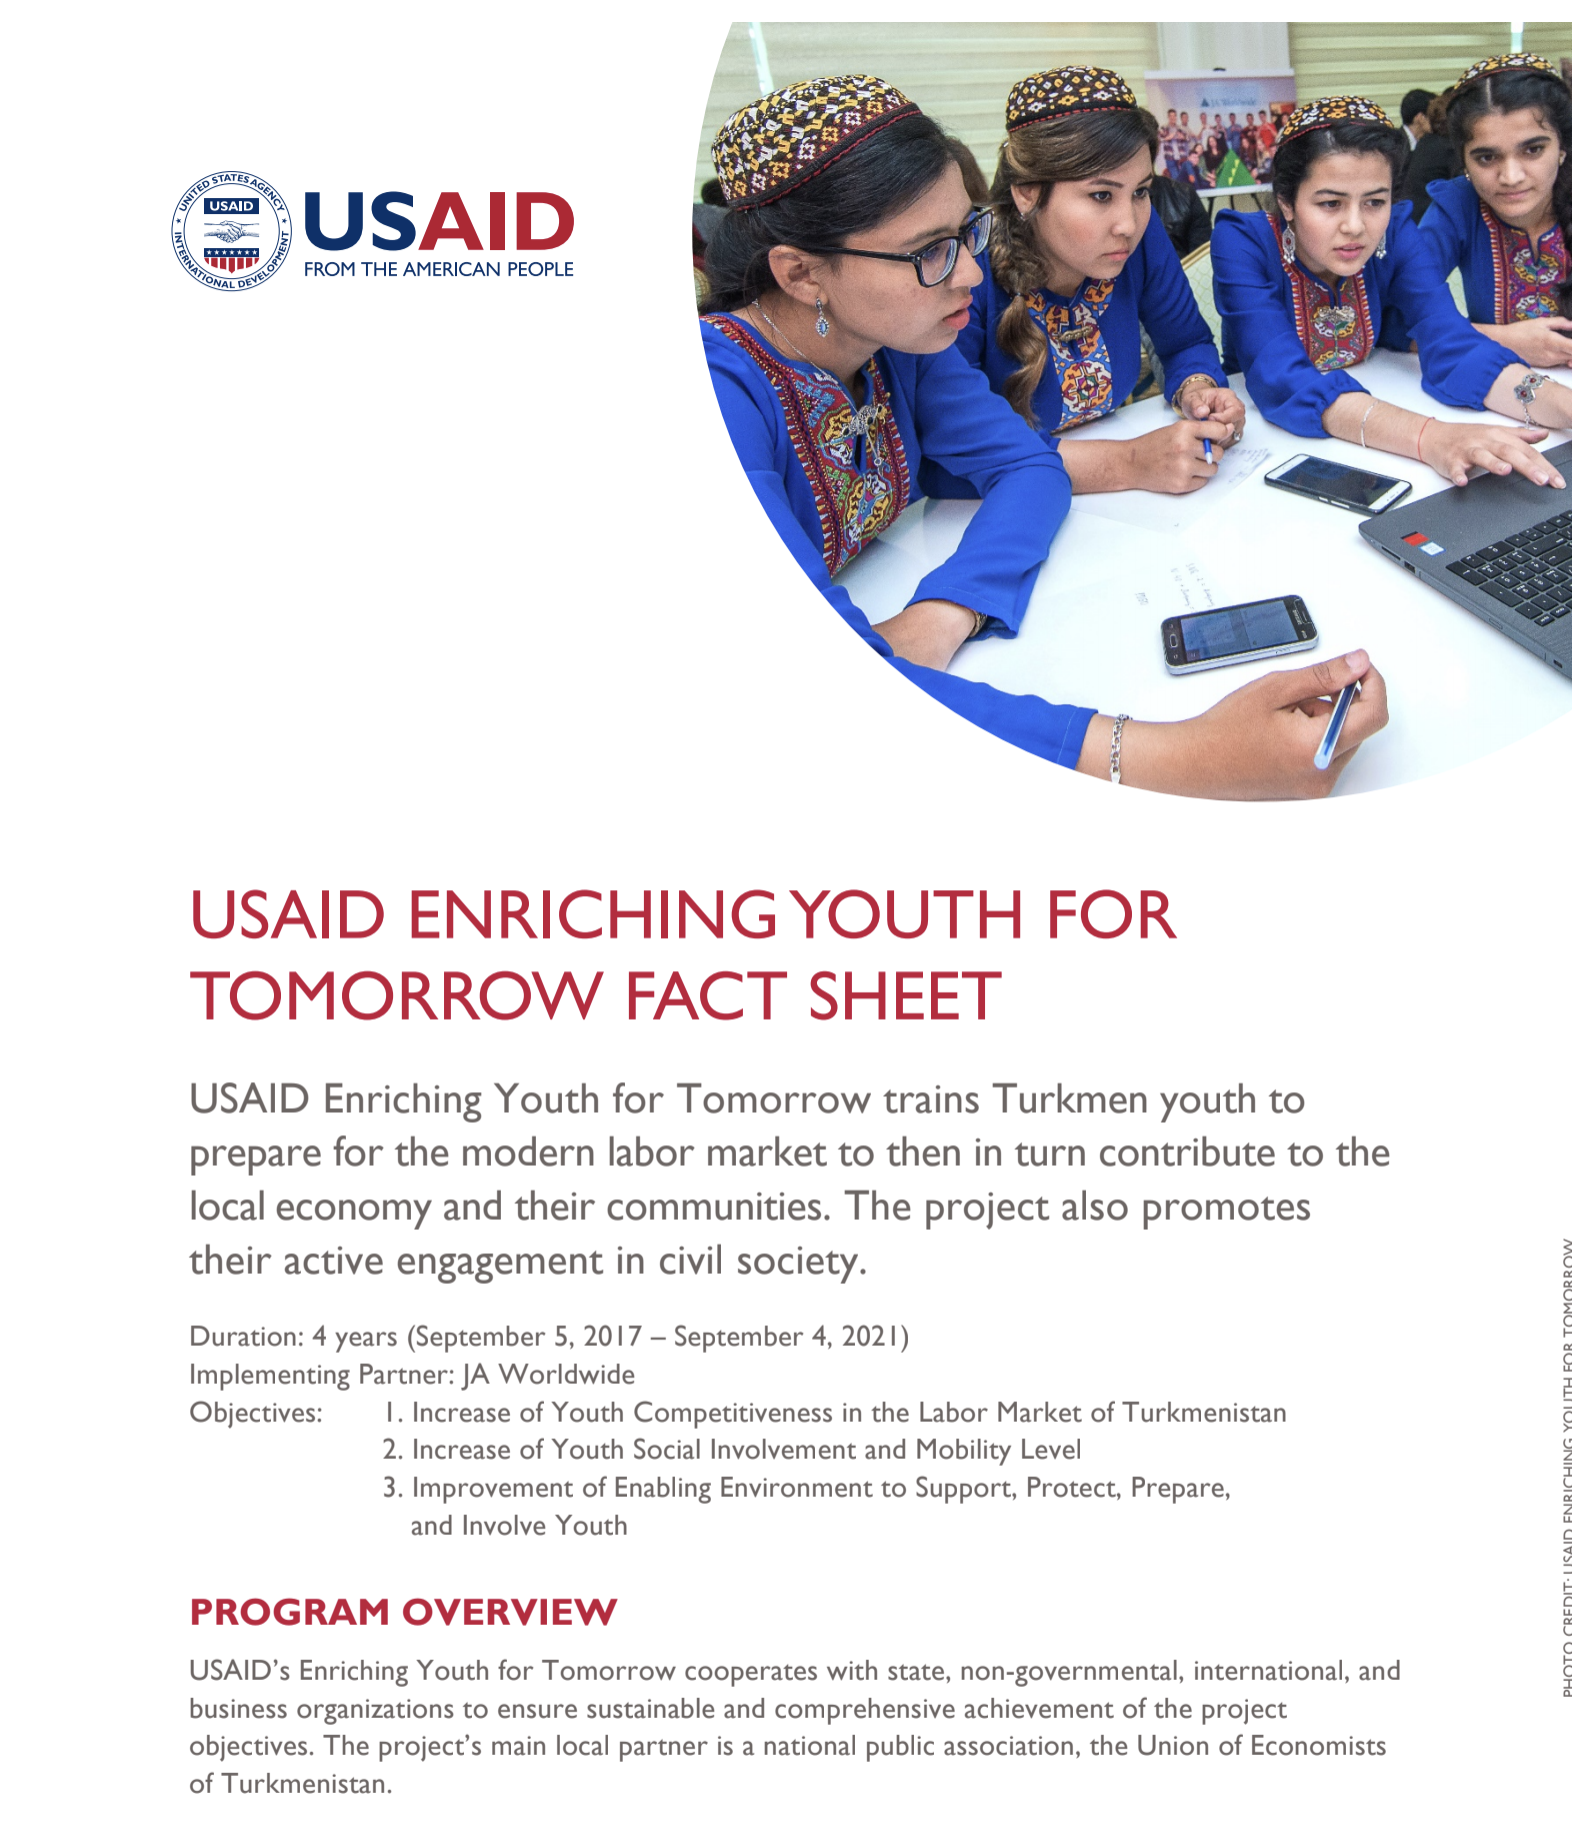 USAID Enriching Youth for Tomorrow